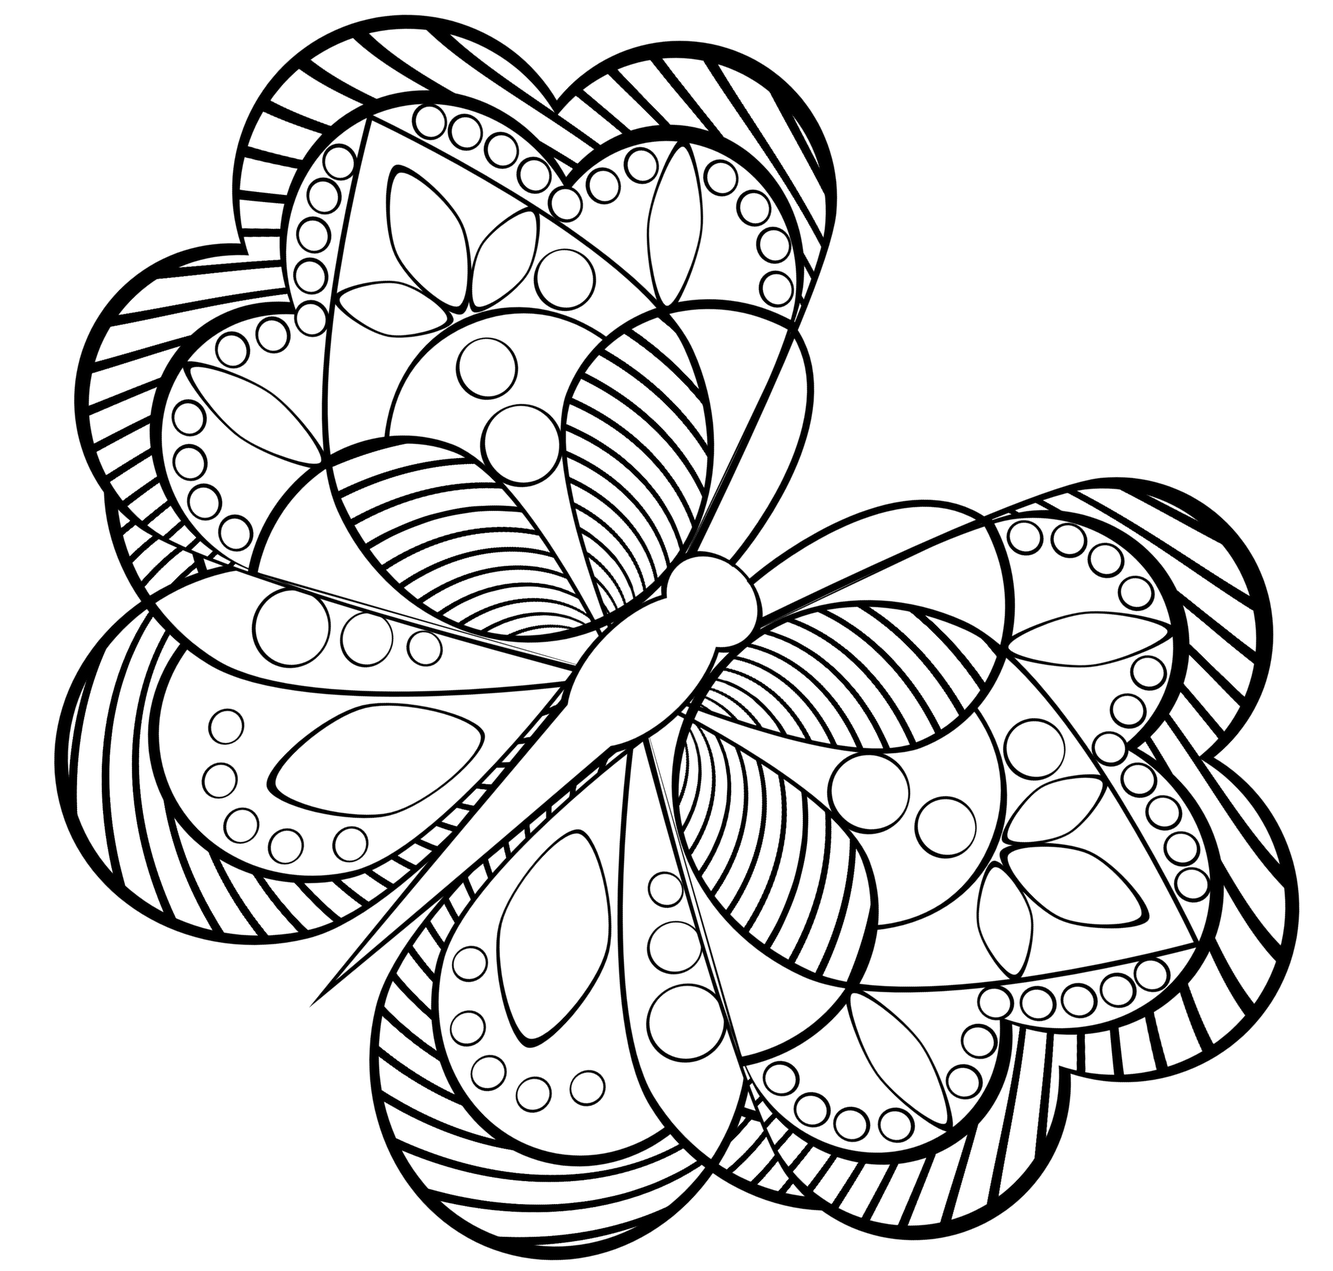 coloring pages for seniors best free printable coloring pages for kids and teens seniors pages coloring for